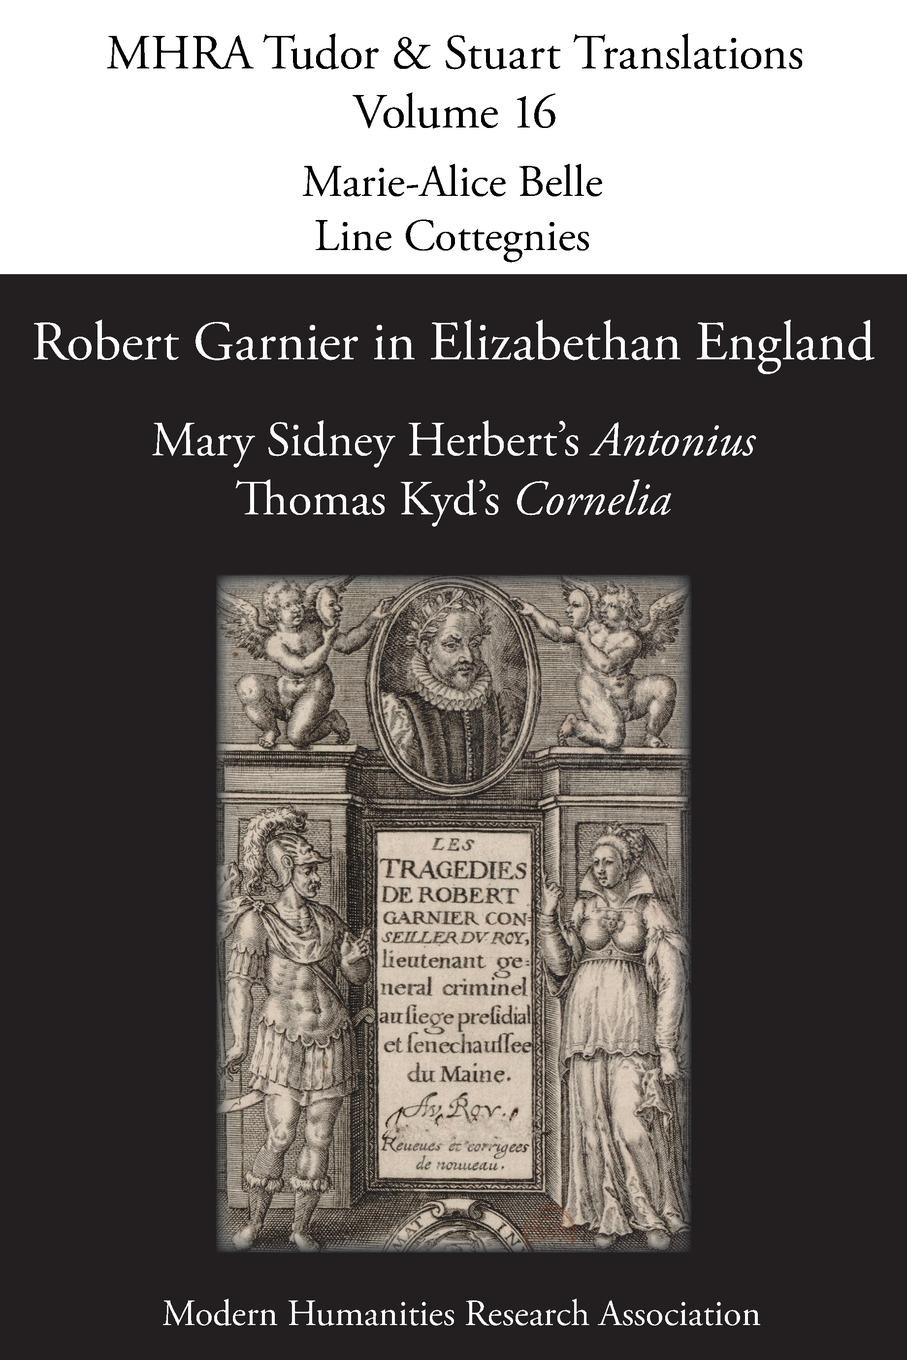 Robert Garnier in Elizabethan England. Mary Sidney Herbert.s .Antonius. and Thomas Kyd.s .Cornelia. sidney lanier shakespeare and his forerunners studies in elizabethan poetry and its development from early english